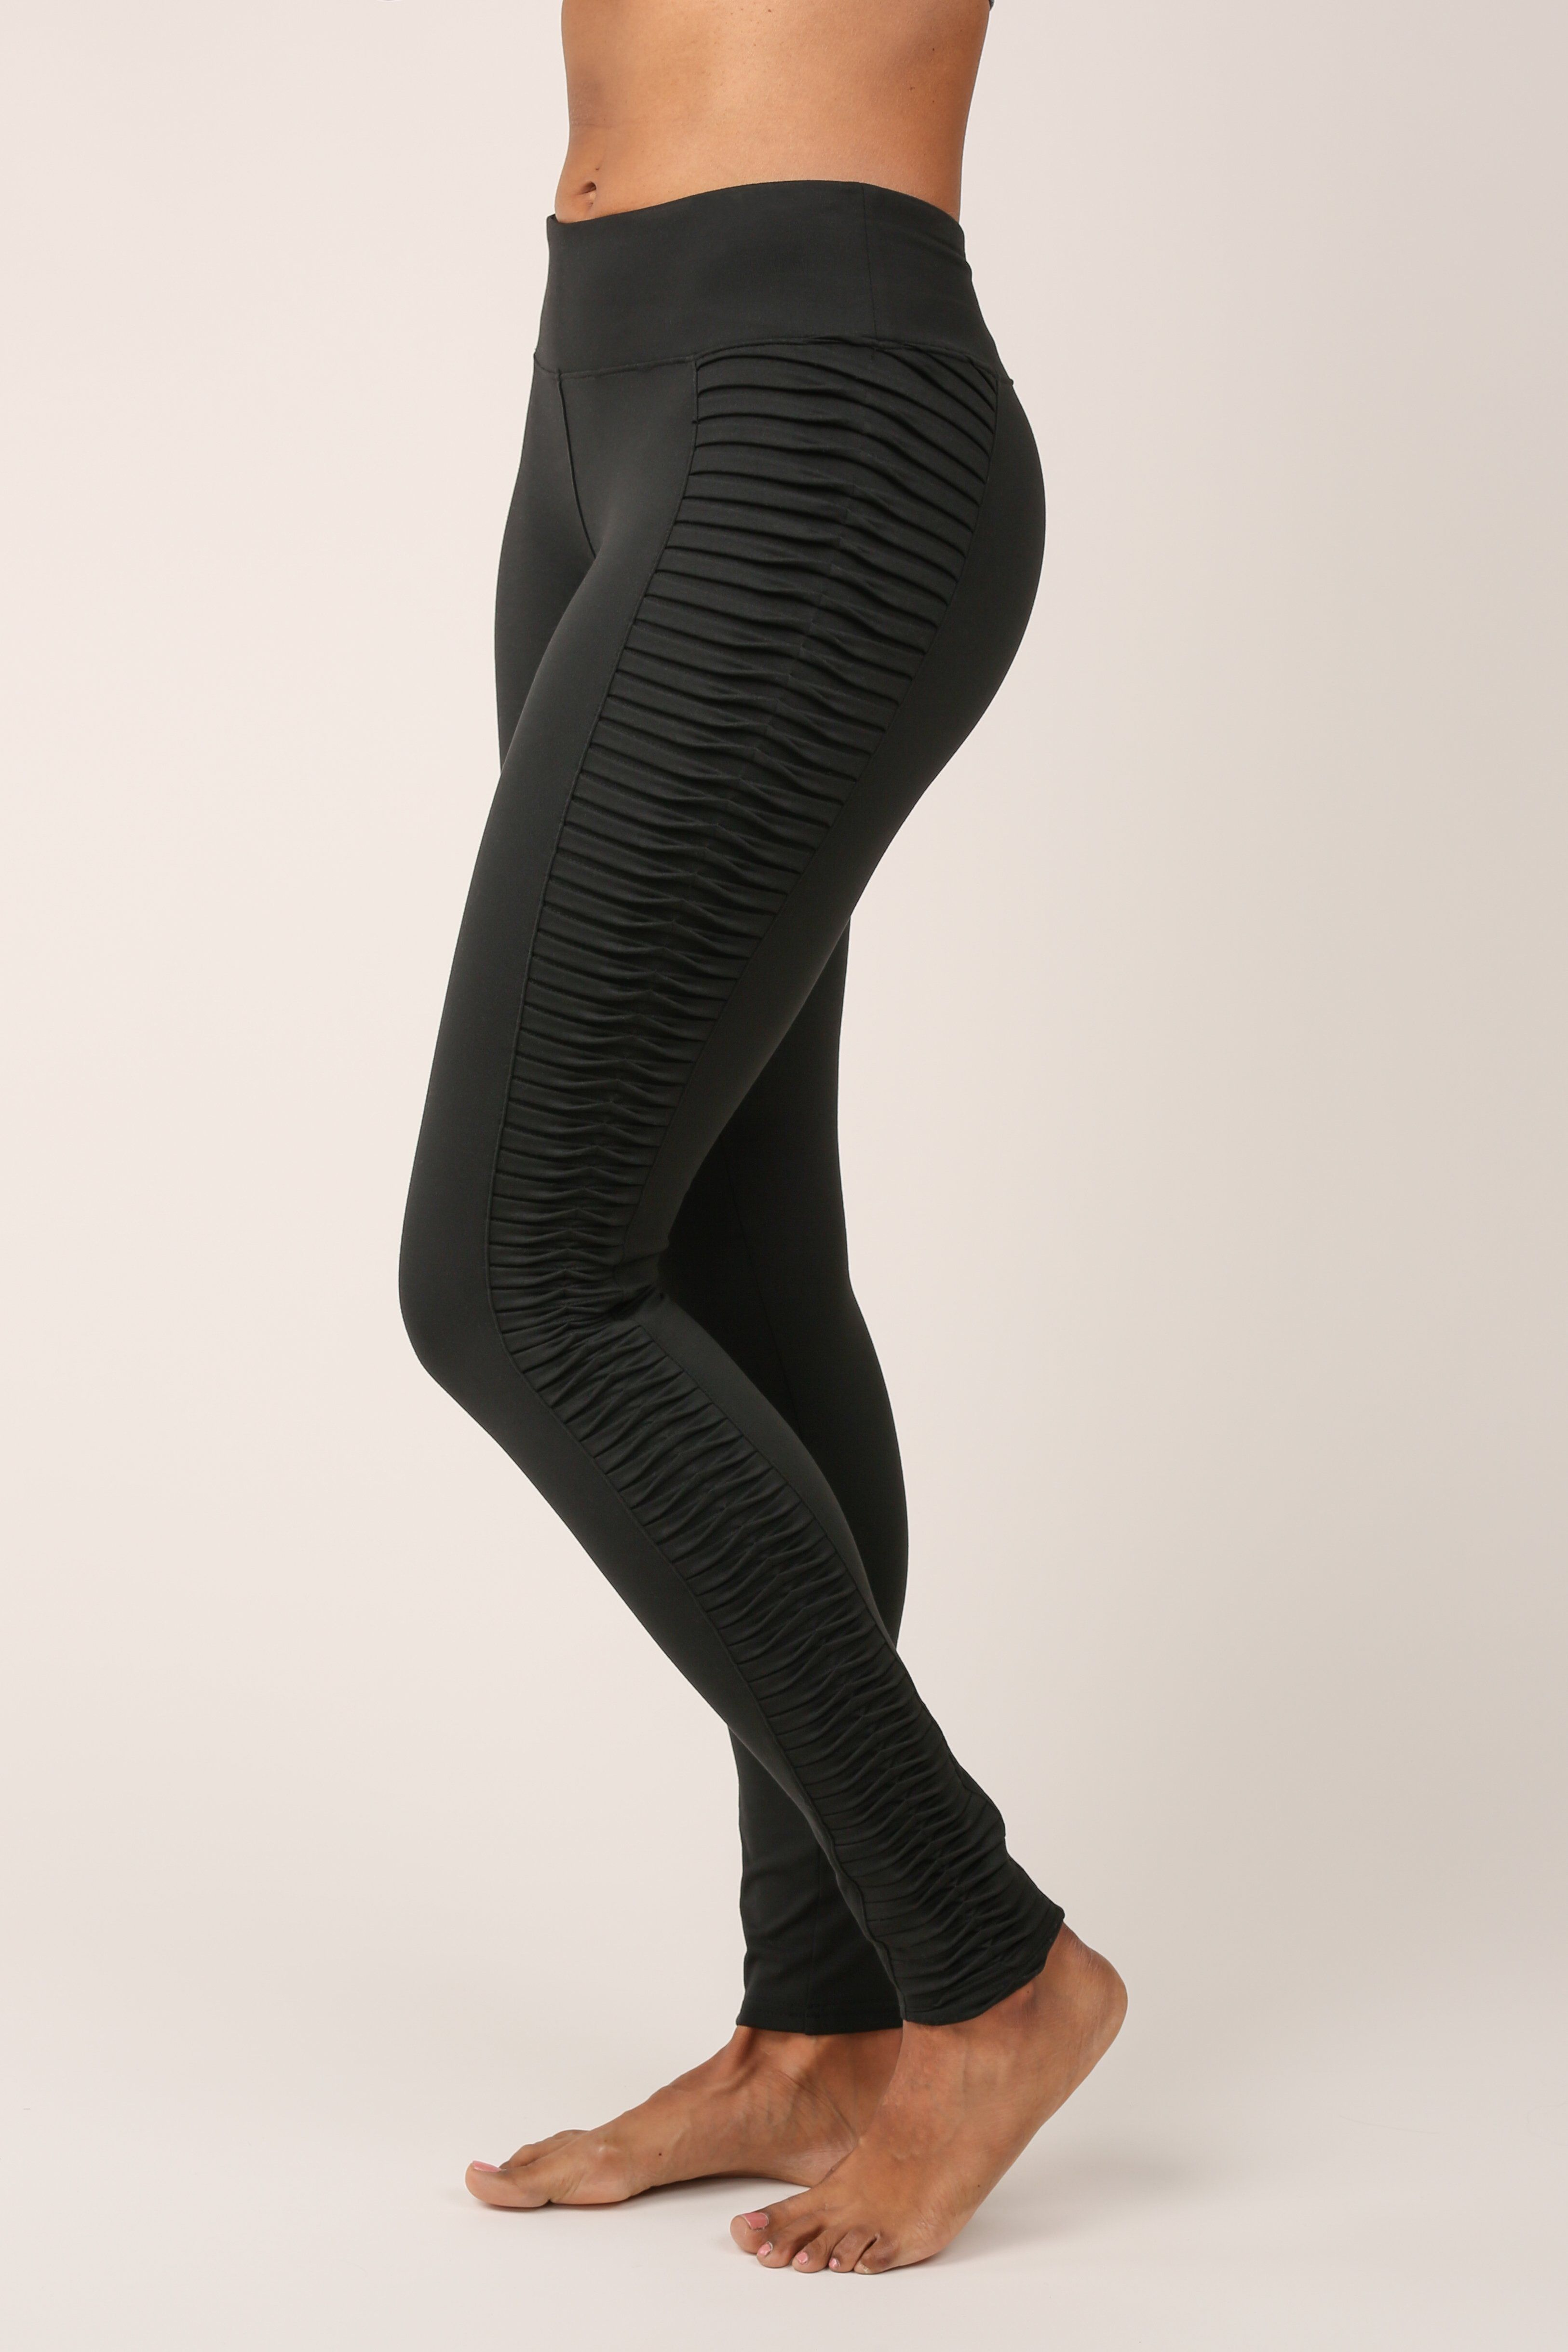 e9578f9b1a03ef Paschi Legging | Leggings | Leggings, Fashion, Pants